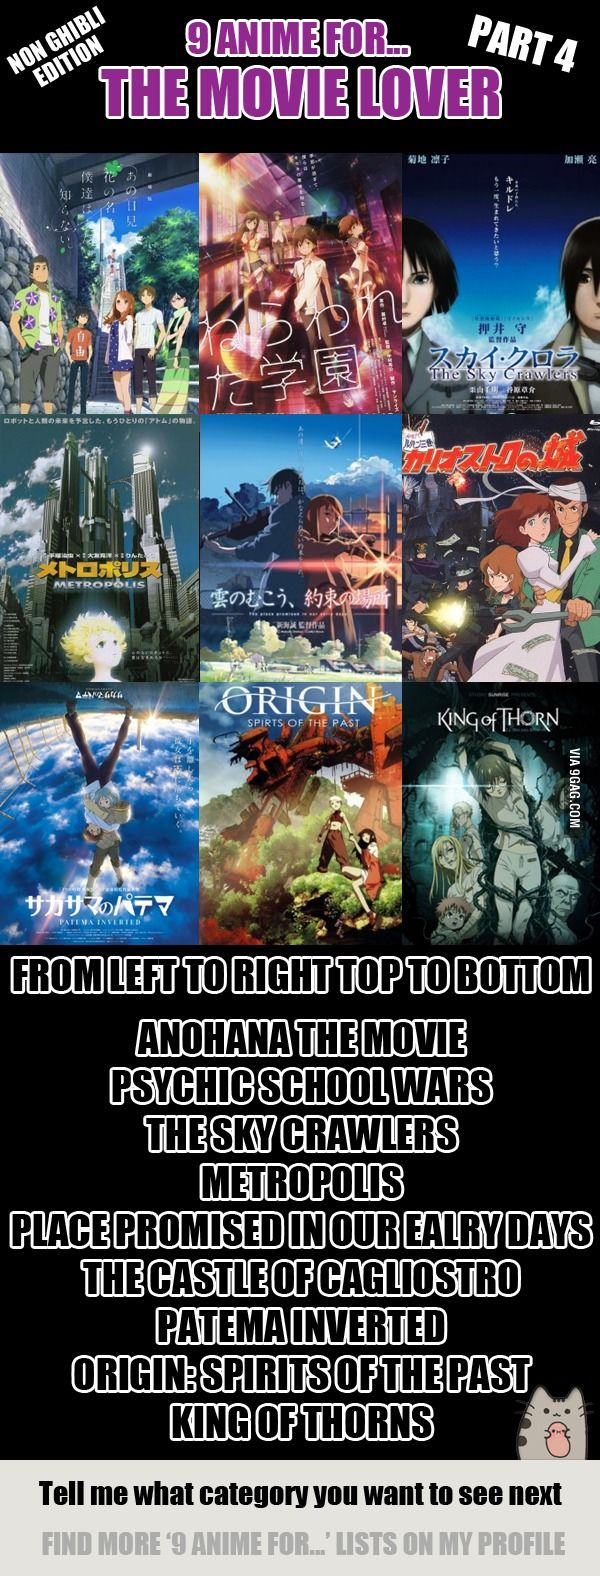 9 Anime For The Movie Lover Non Ghibli Edition Part 4 Anime Titles Anime Reccomendations Anime Suggestions